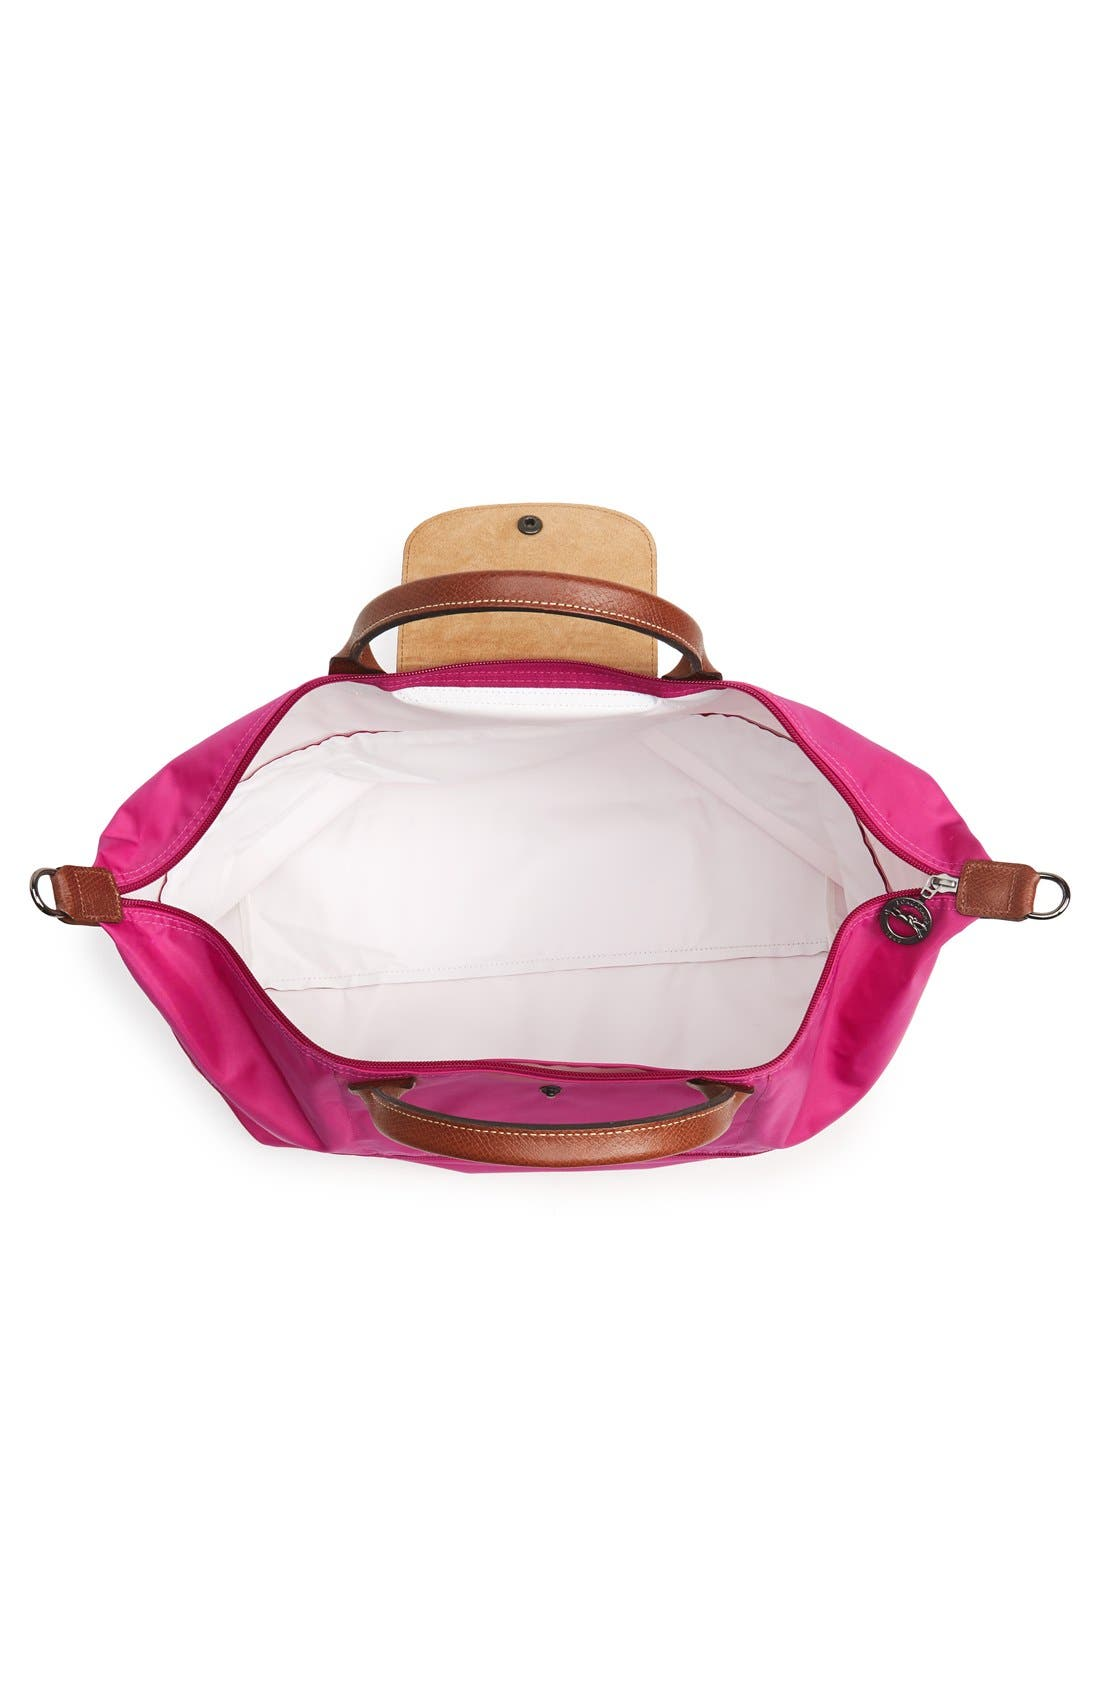 Alternate Image 3  - Longchamp 'Le Pliage' Expandable Travel Bag (21 Inch)